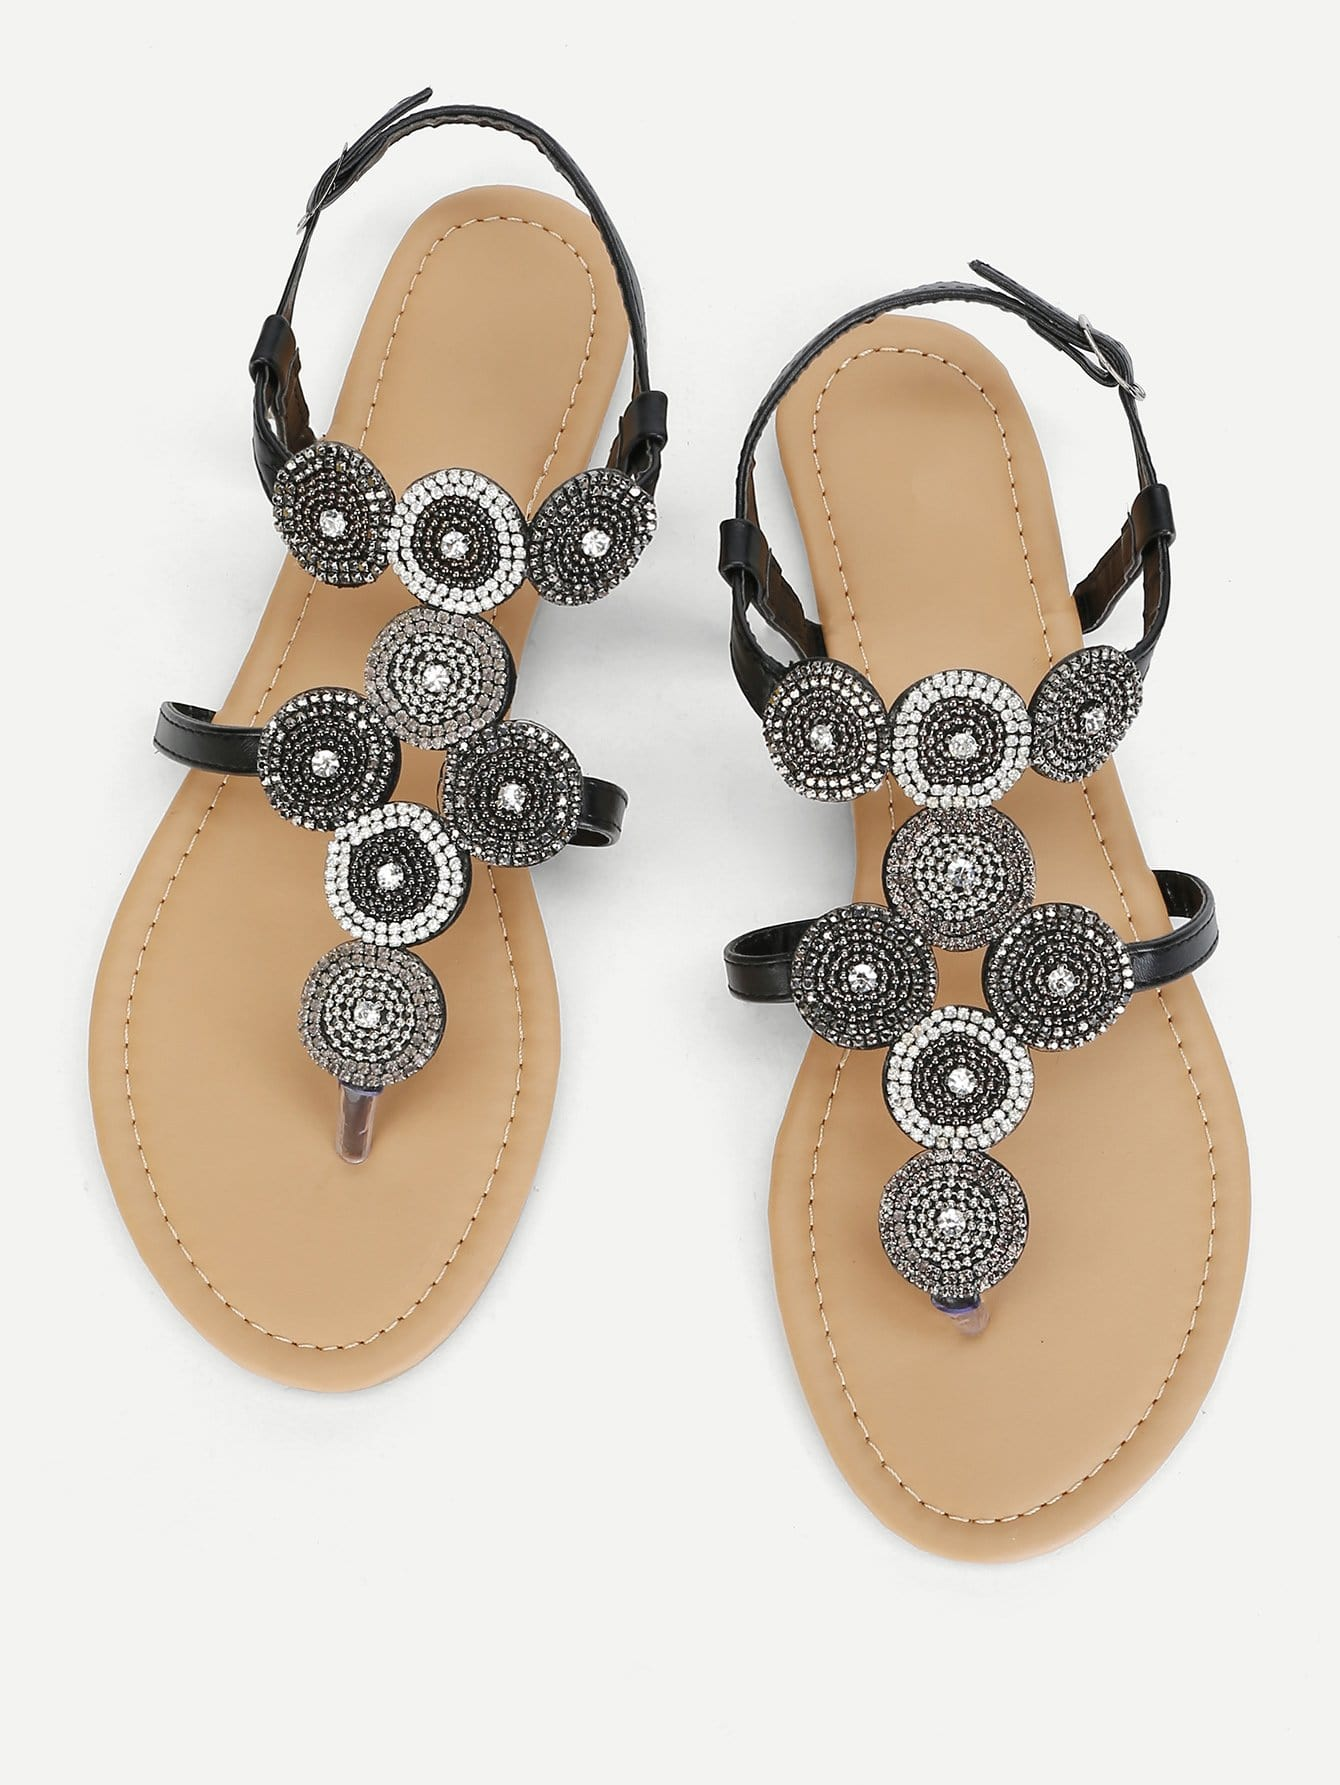 Rhinestone Detail Toe Post Sandals rhinestone detail strappy sandals